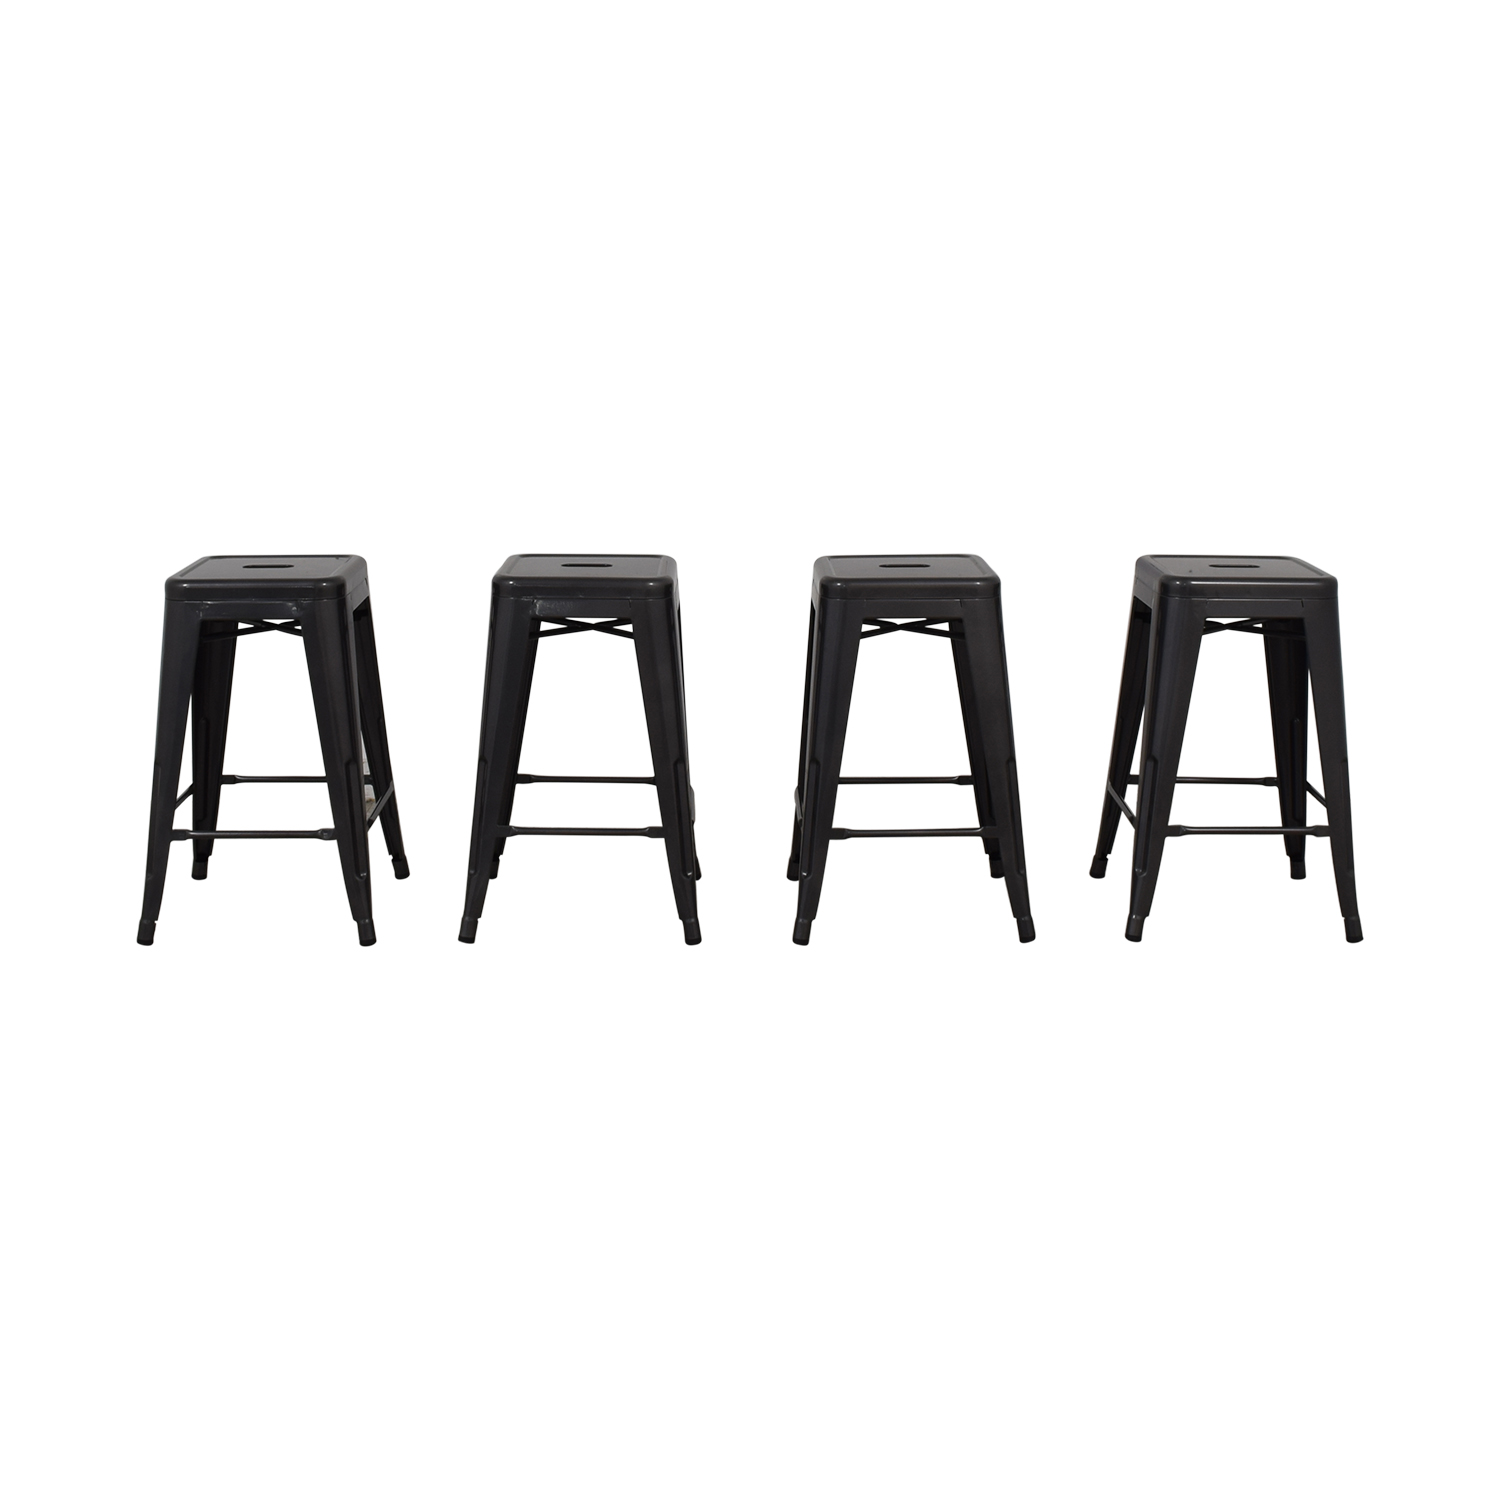 Titan Titan Distressed Gunmetal Bar Stools used